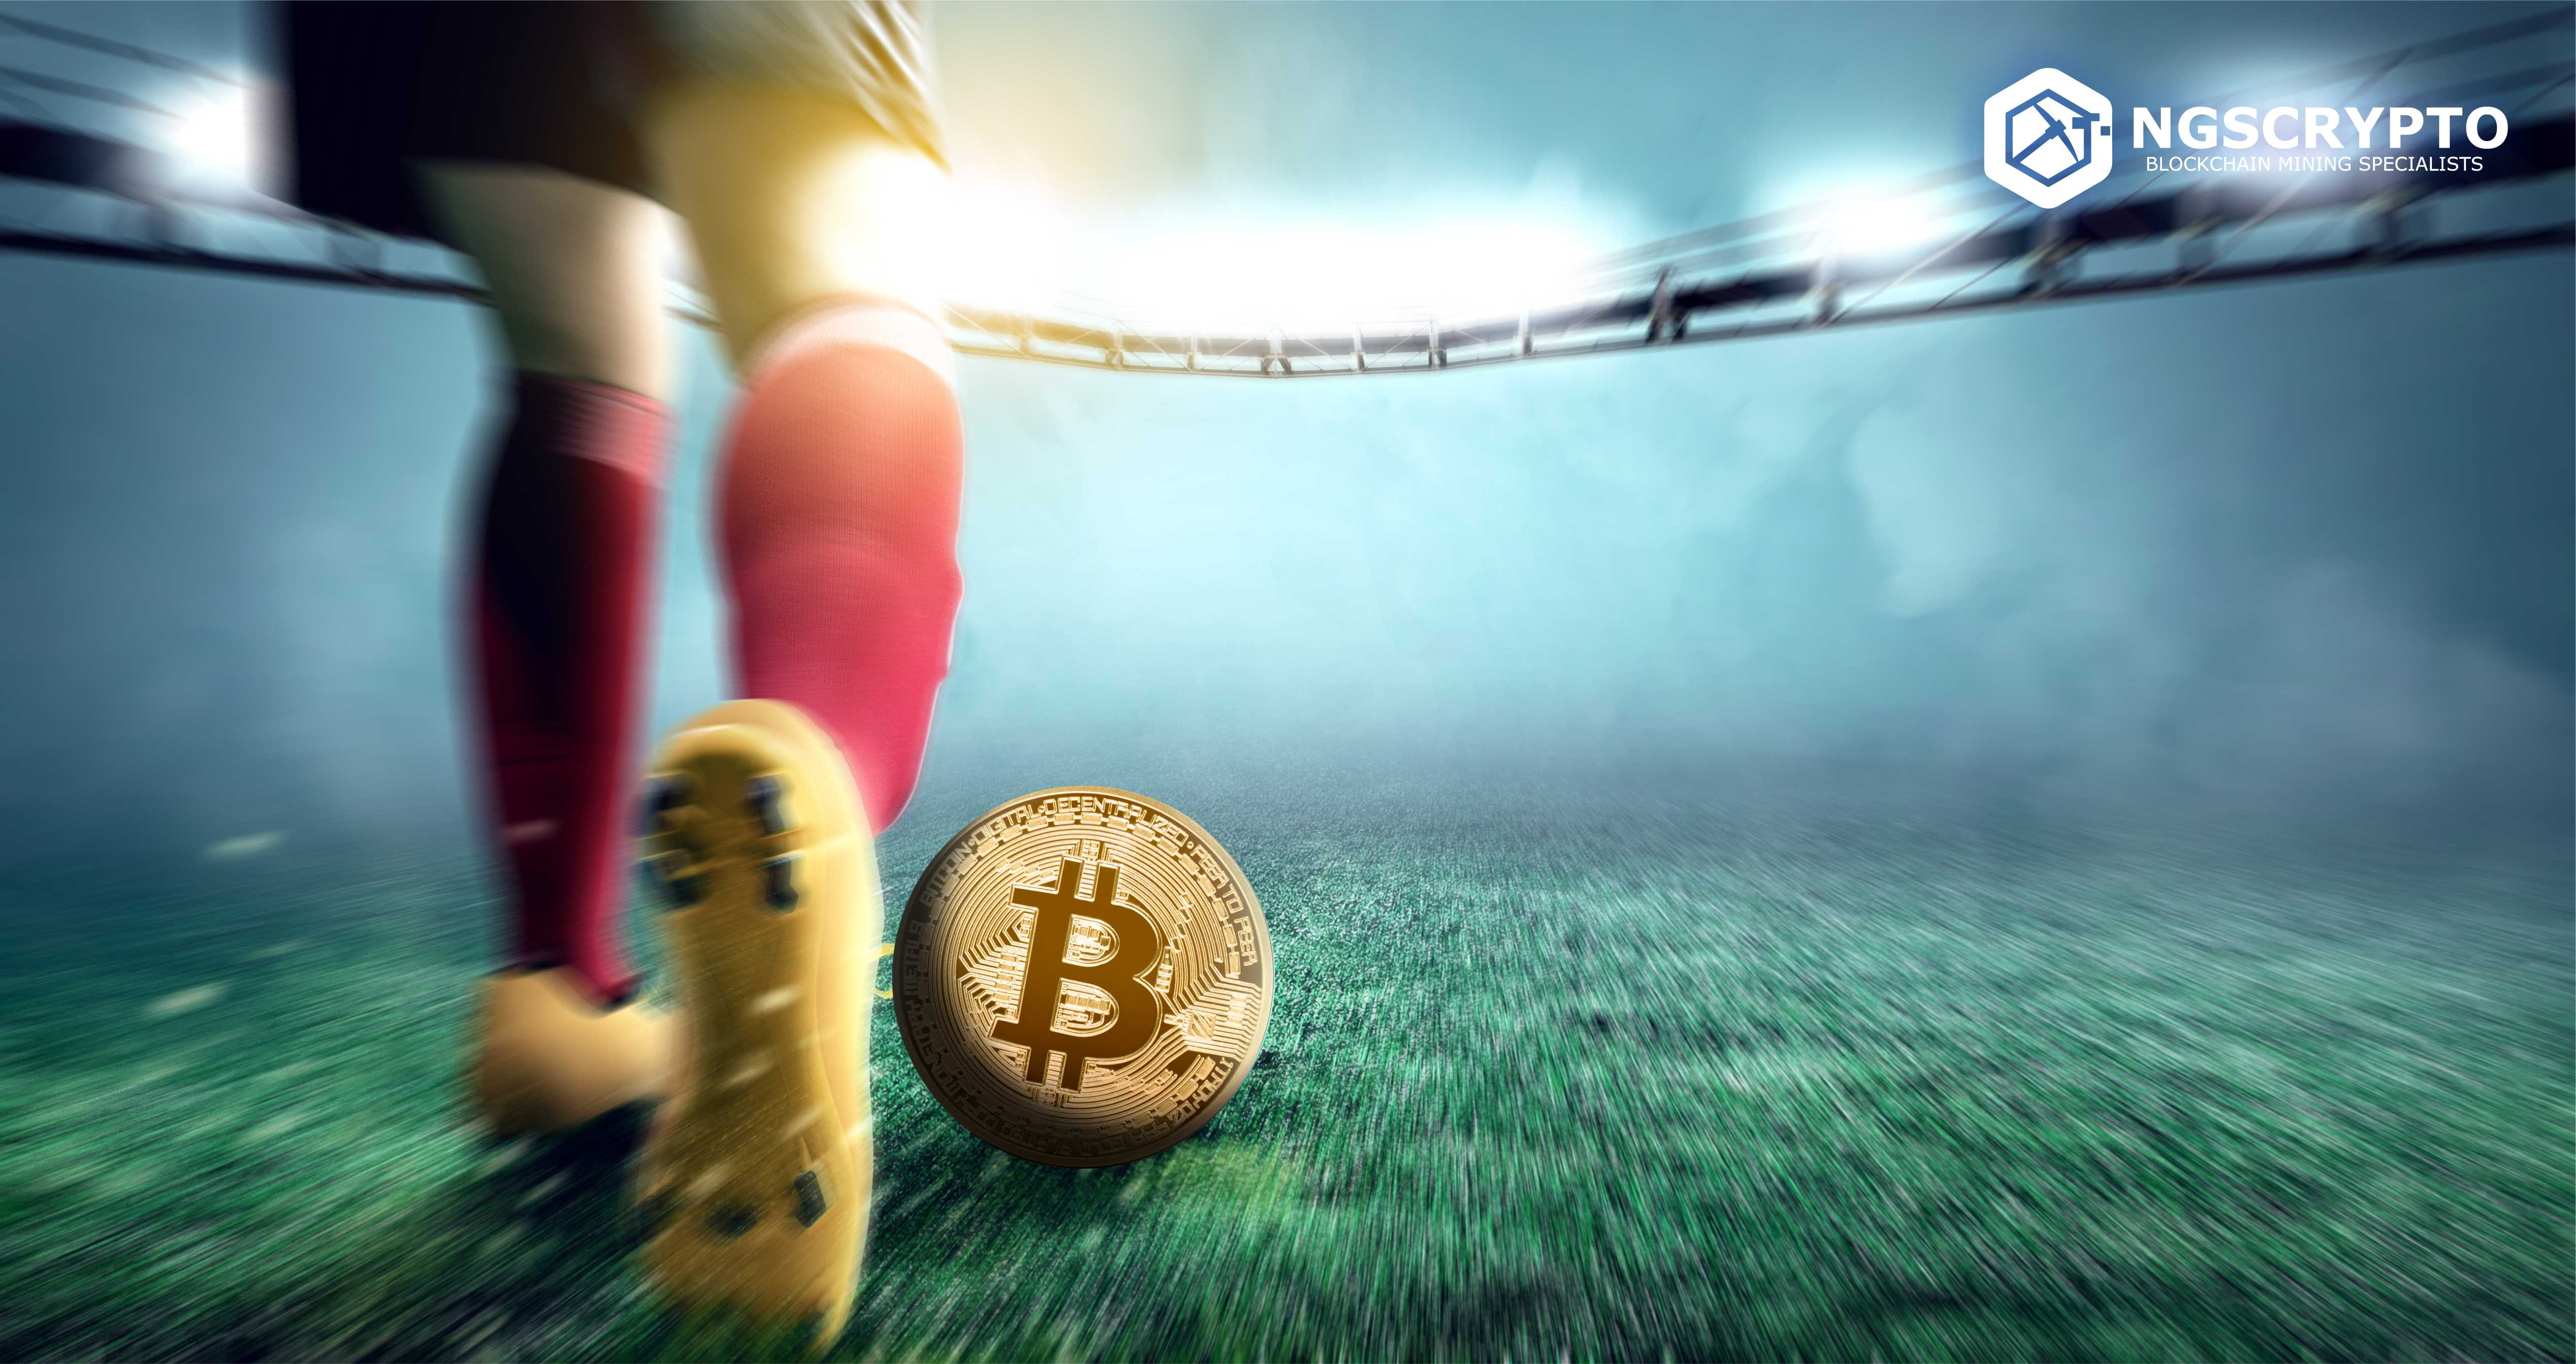 WHAT SPORT STARS WOULD EARN IF PAID IN BTC